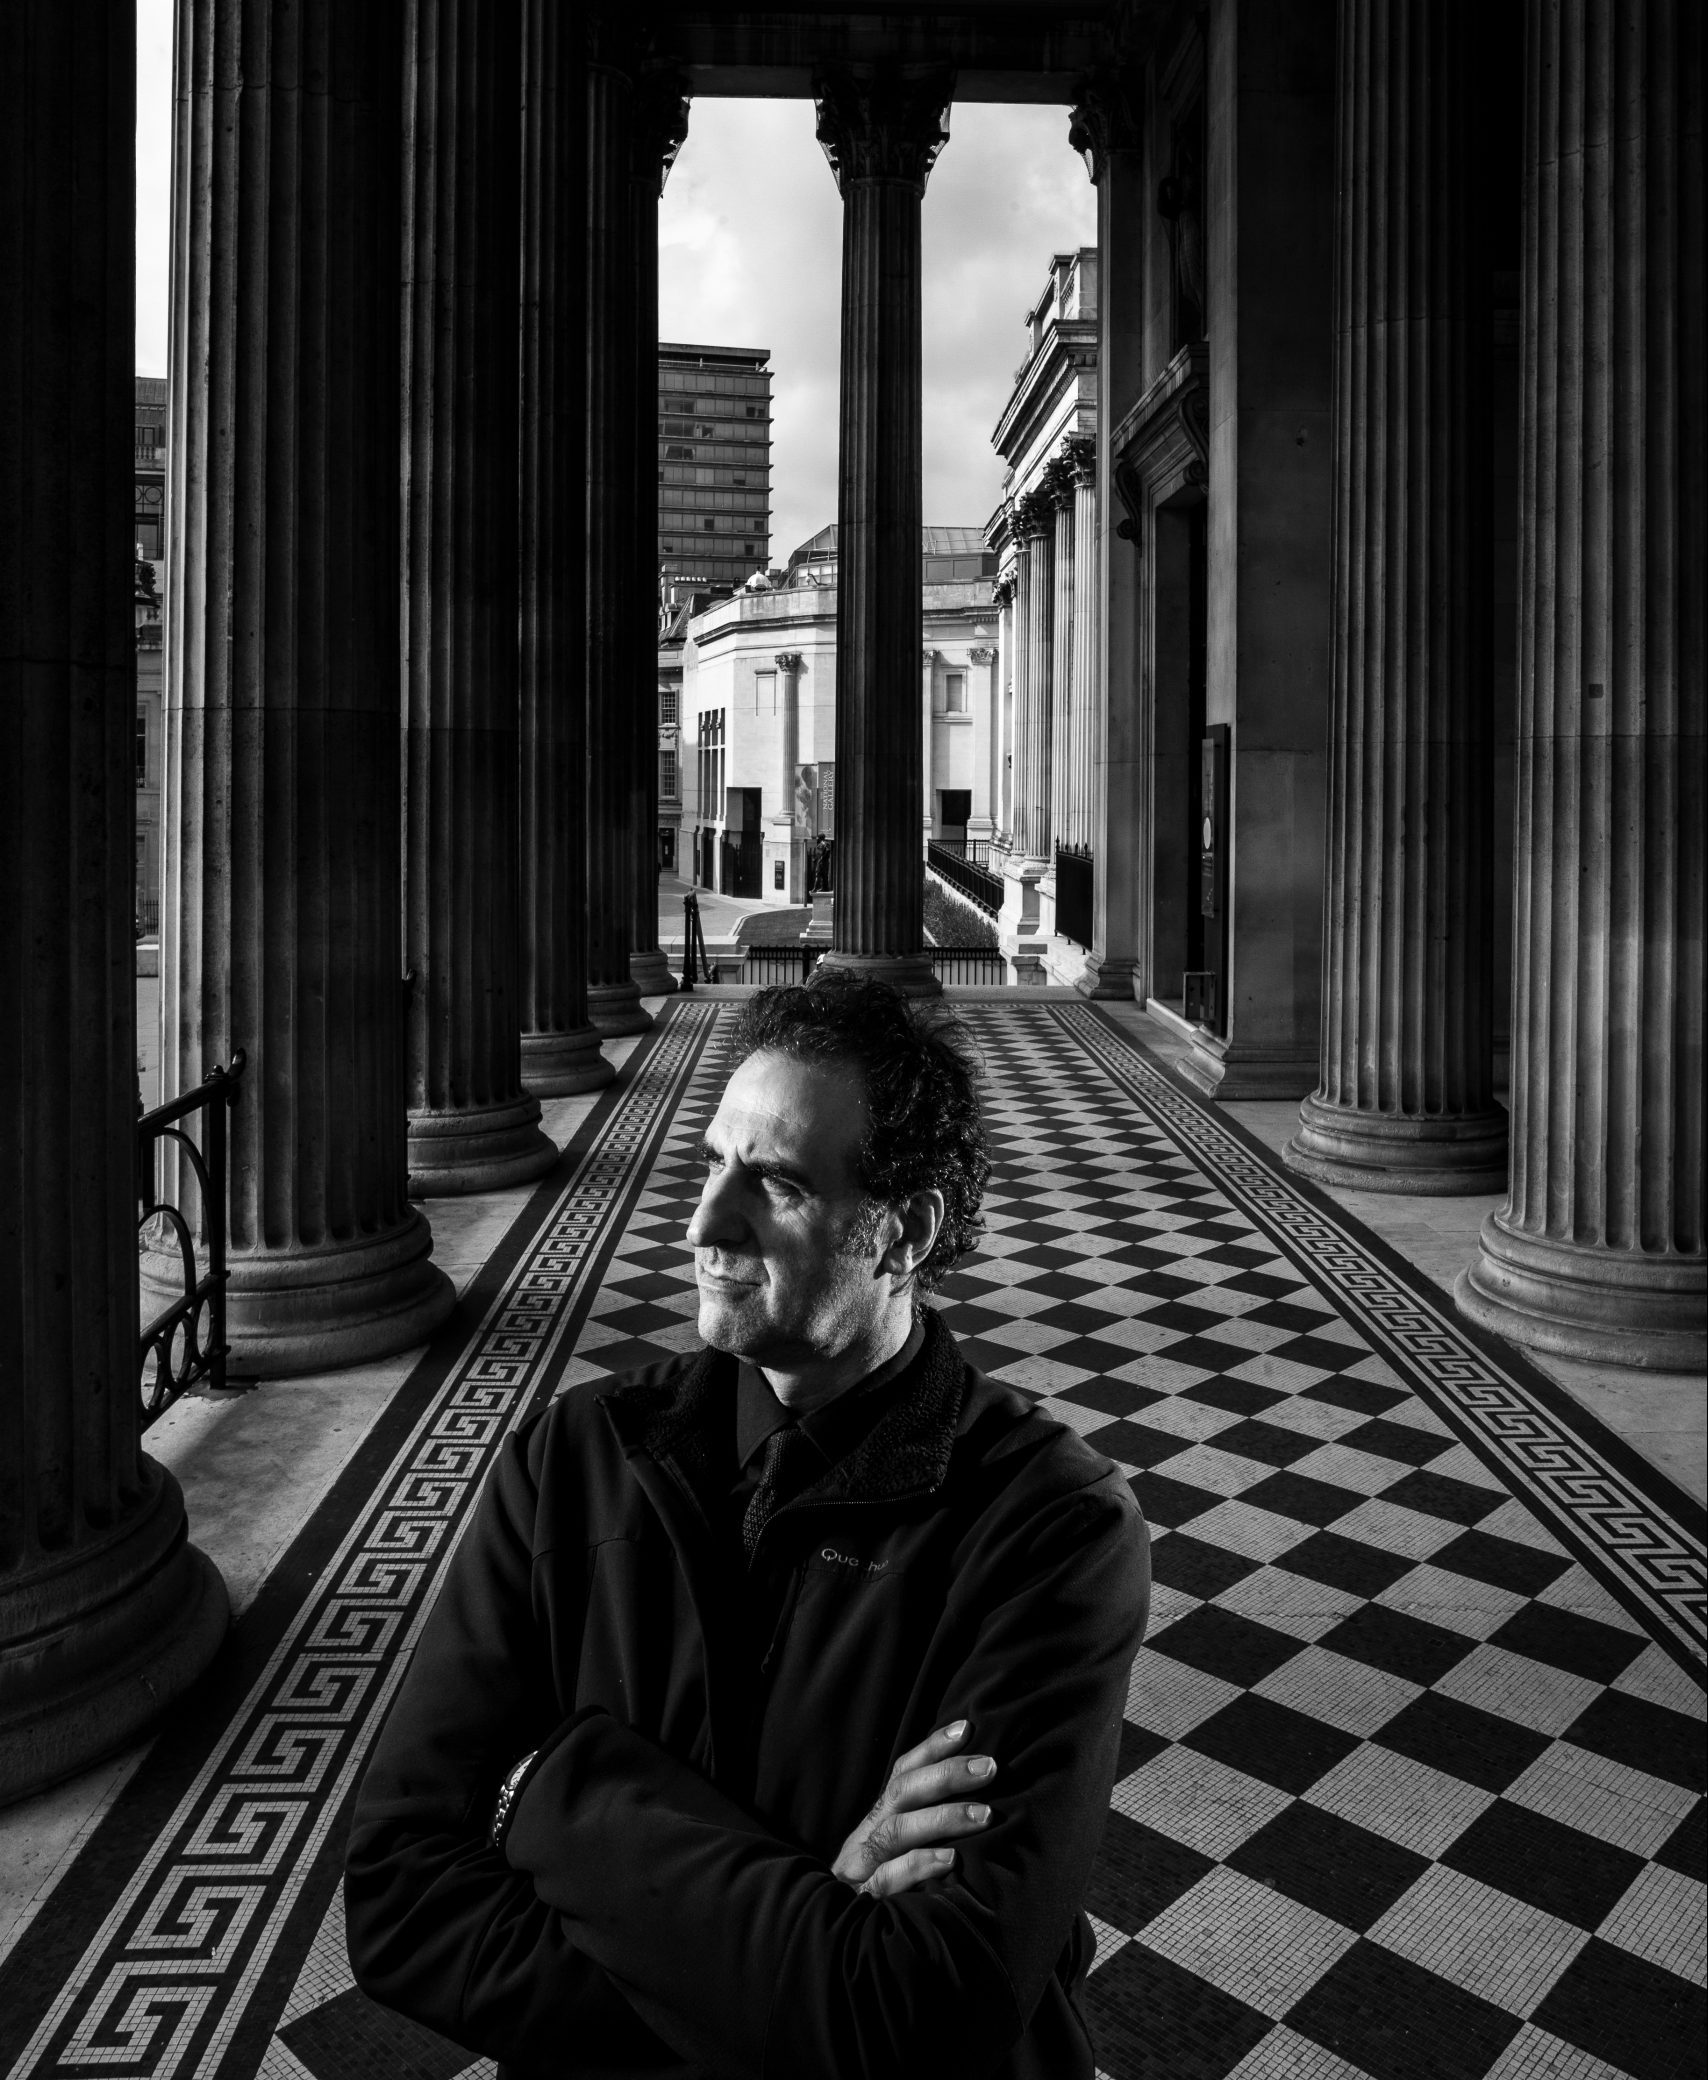 Gabriele Finaldi has been the director of the National Gallery since 2015